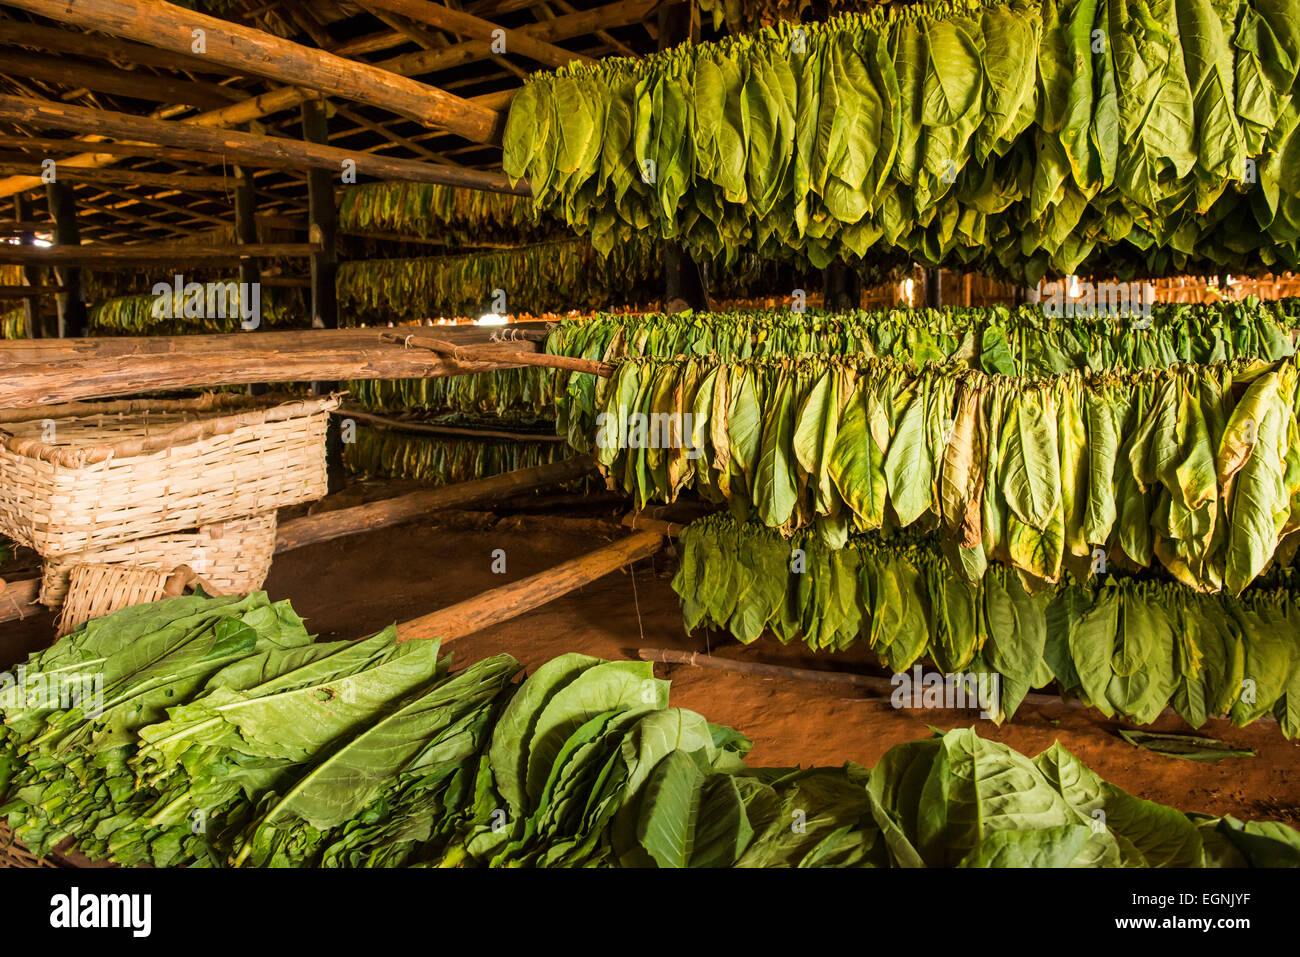 Tobacco Hanging In Tobacco Barn In Vinales Cuba Stock